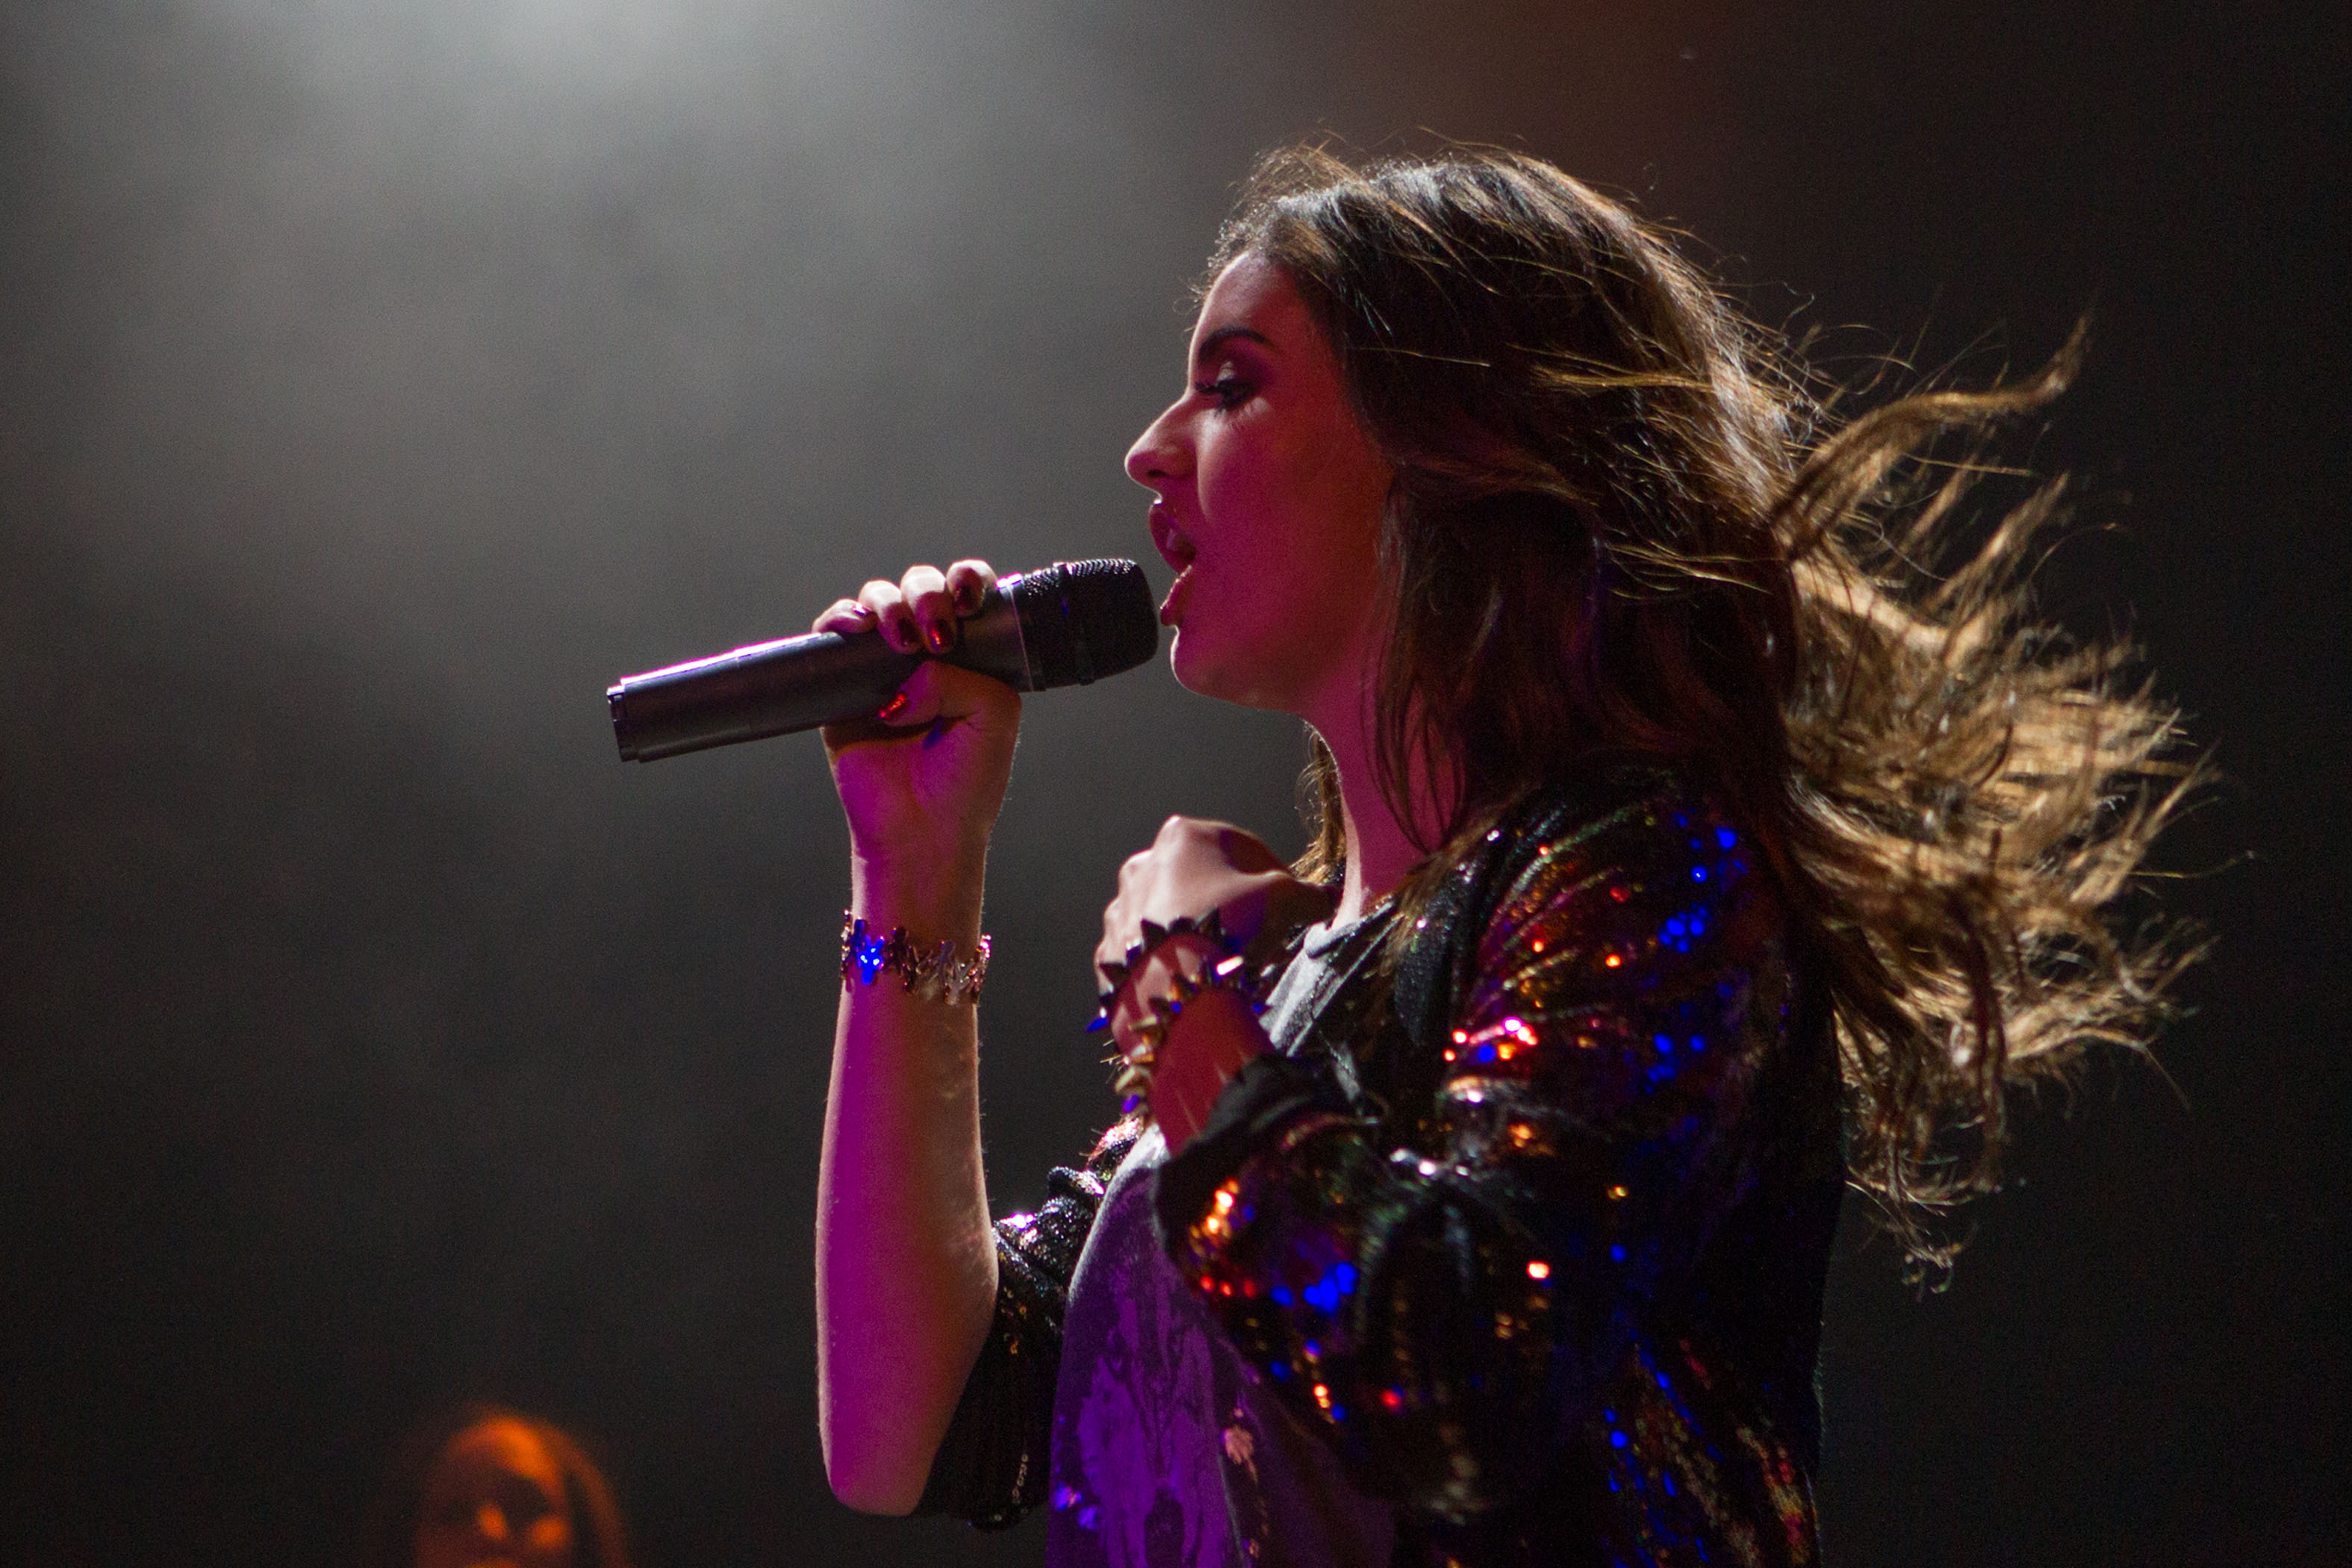 78332_Preppie_Rebecca_Black_performing_at_The_House_Of_Blues_in_Anaheim_15_122_118lo.JPG